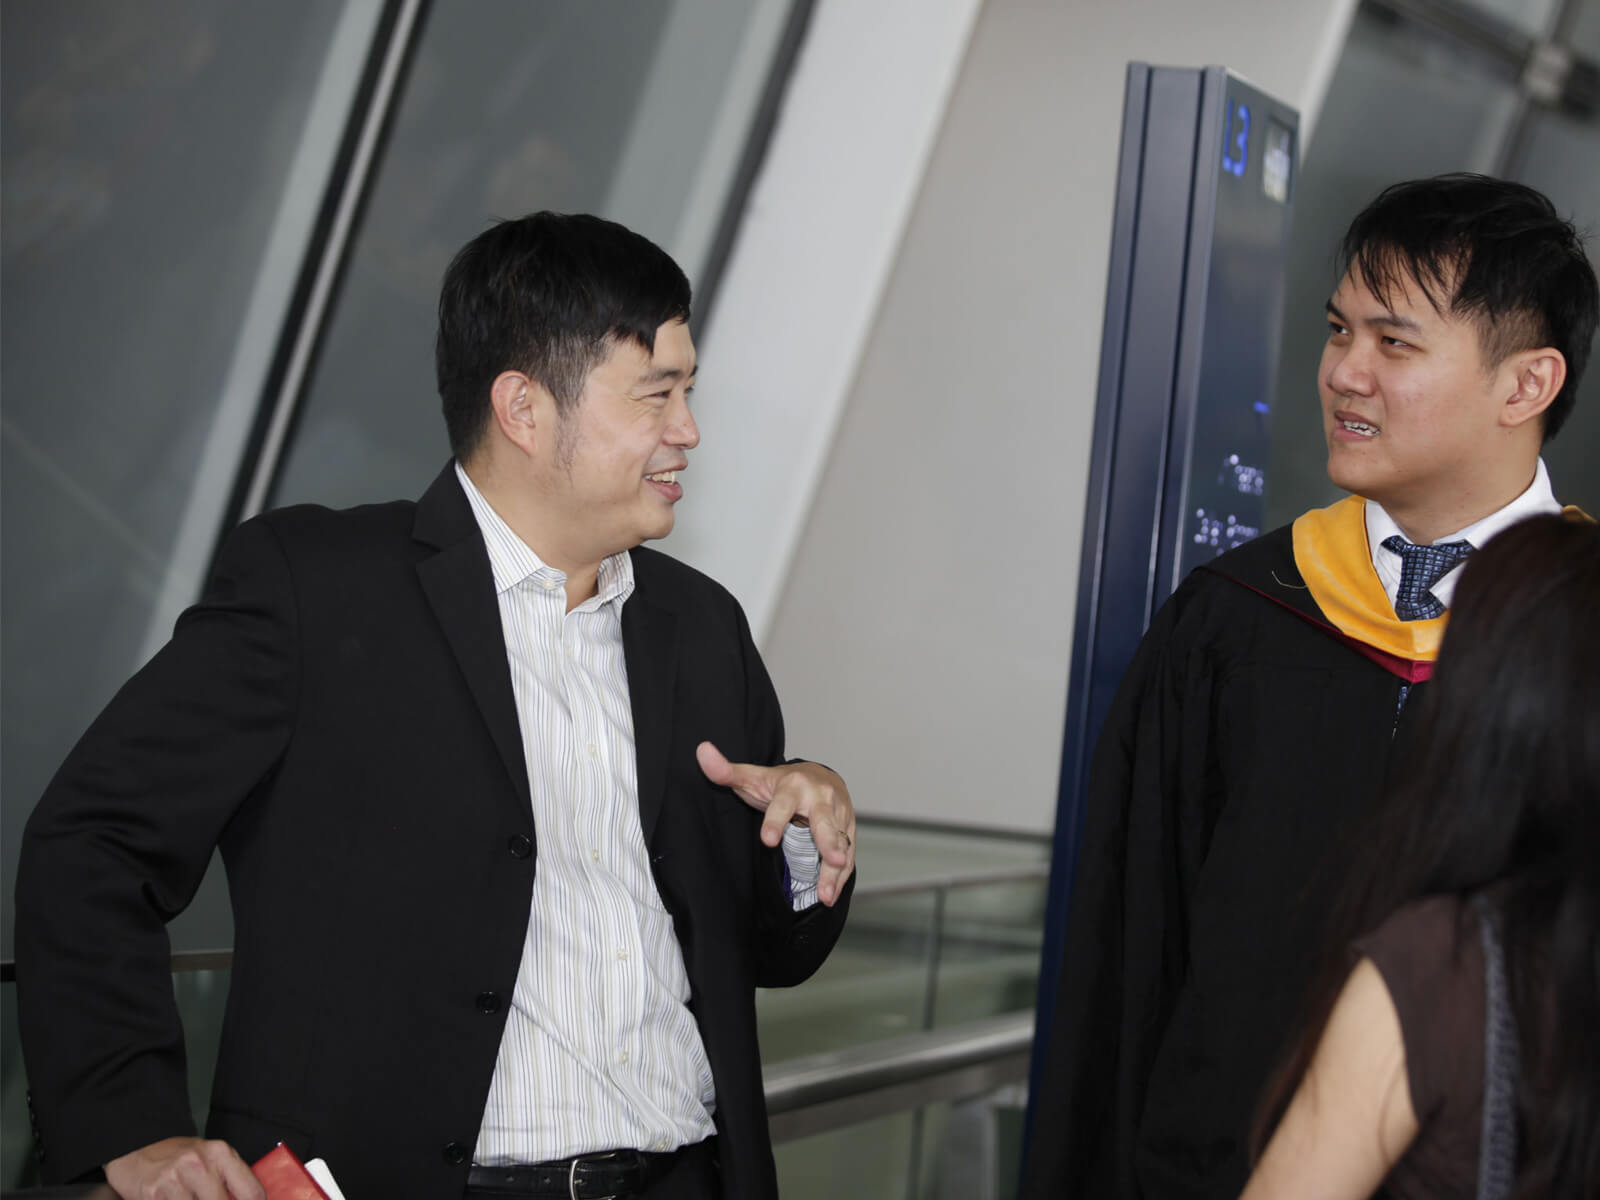 Dr. Edward Sim talks to a newly graduated DigiPen student who is wearing a cap and gown